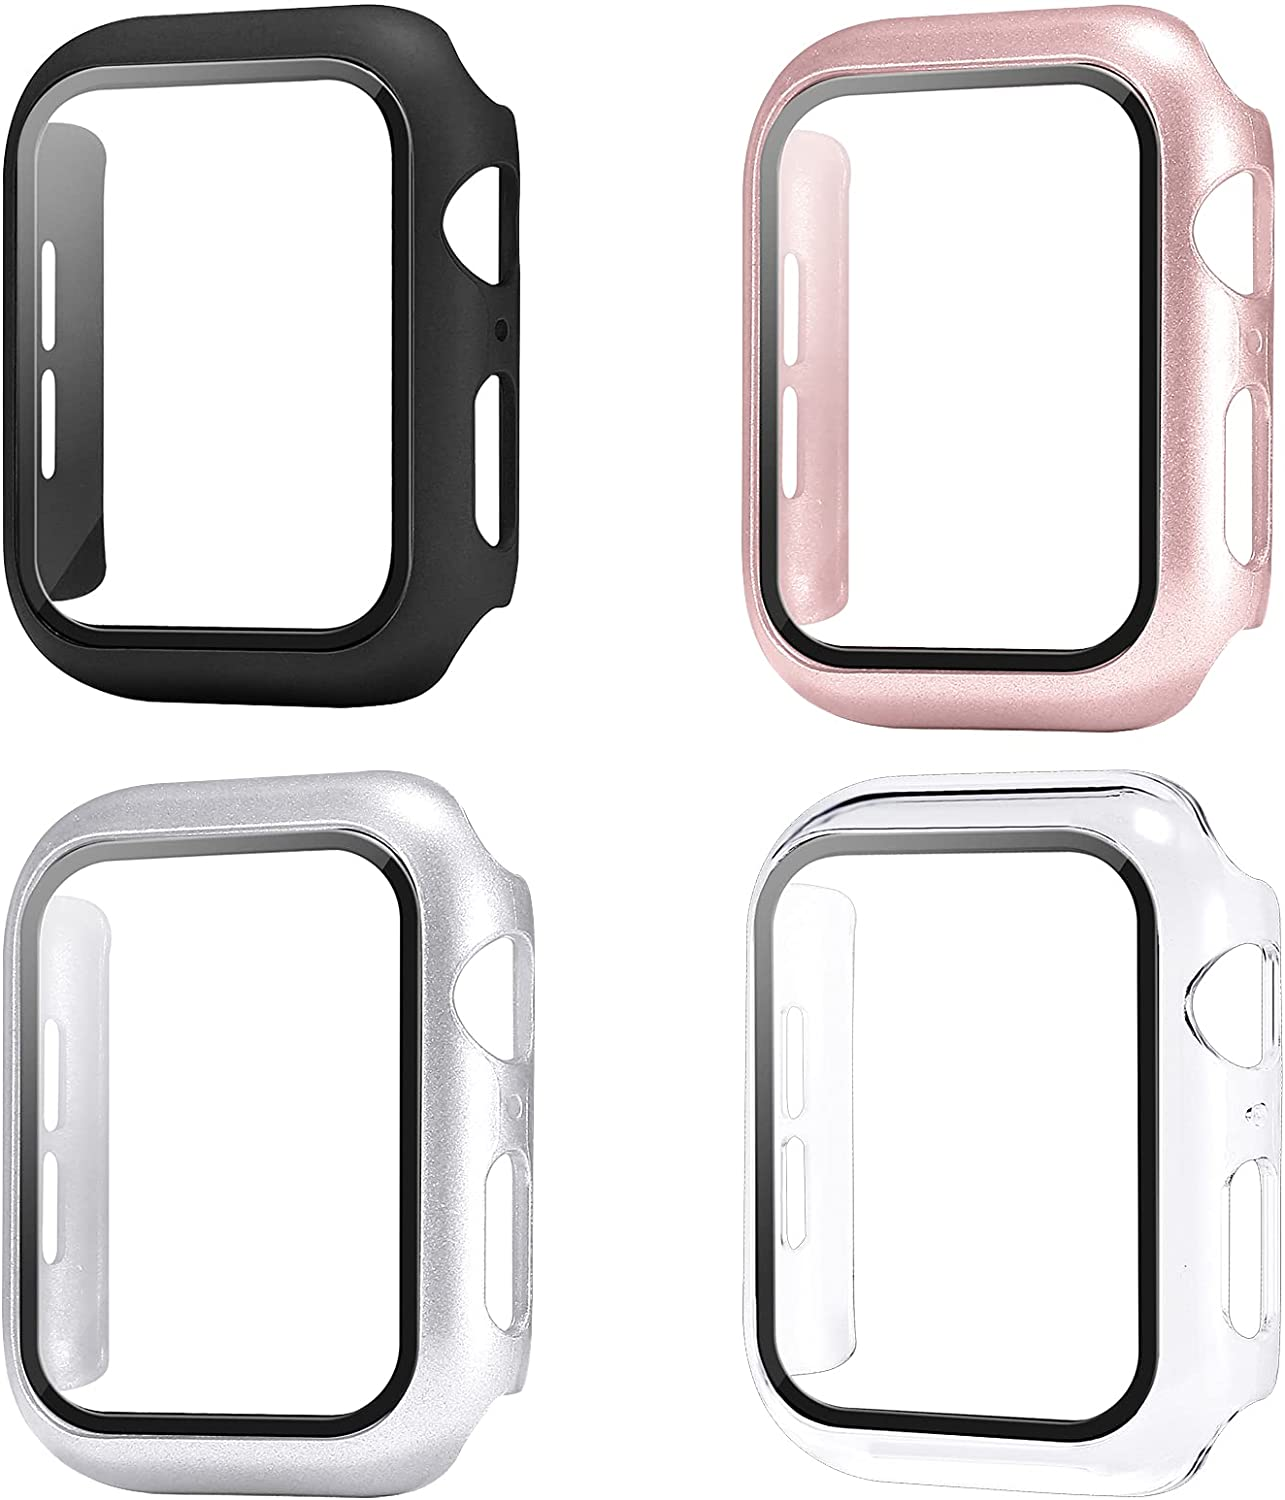 Sobrilli 4 Pack Case Tempered Glass Screen Protector Compatible with iWatch 38mm Series 3/2/1, Hard PC Bumper Case Protective Cover Frame Compatible with iWatch 38mm (Black/Rose Gold/Silver/Clear)